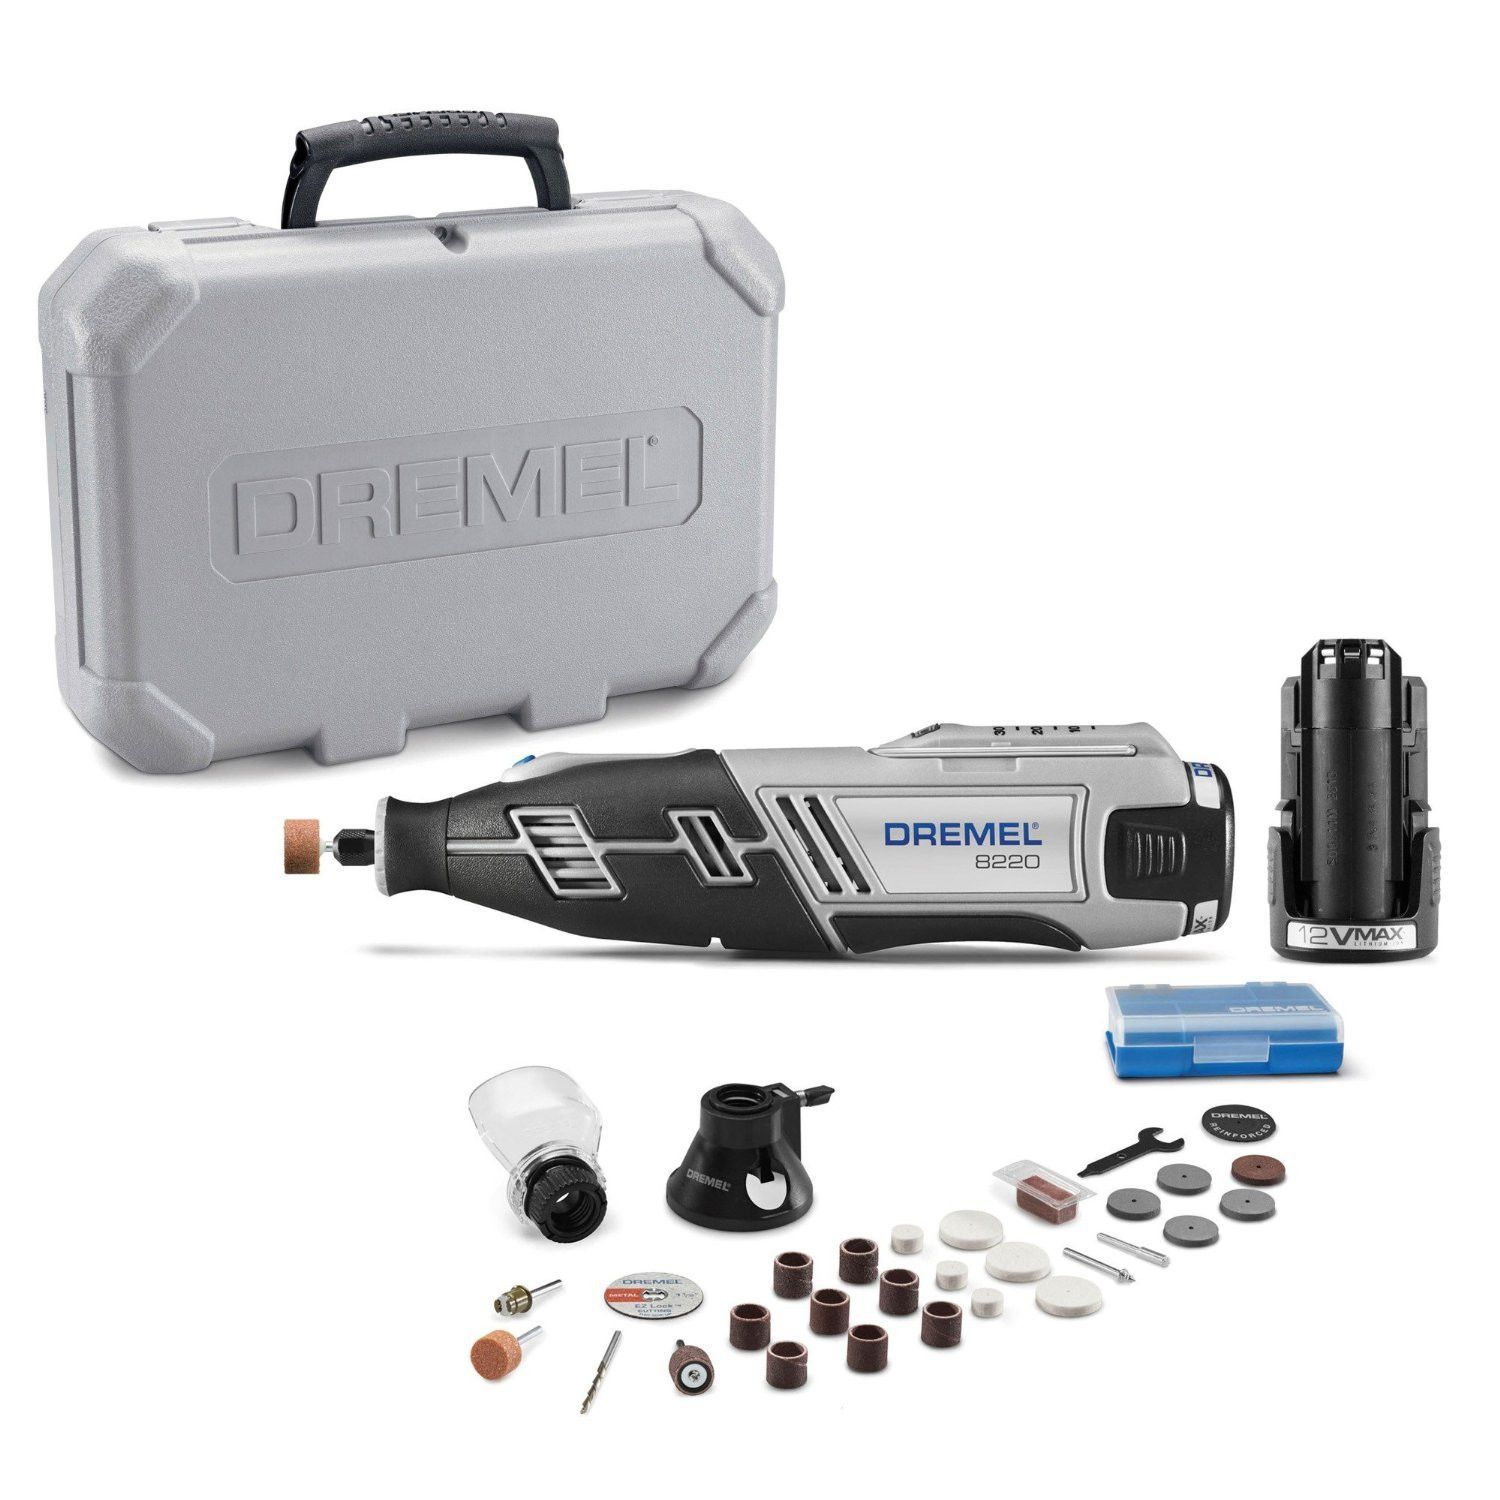 Dremel 8220 2 28 12 Volt Max Cordless Rotary Tool With Accessories Dremel Rotary Tool Dremel Projects